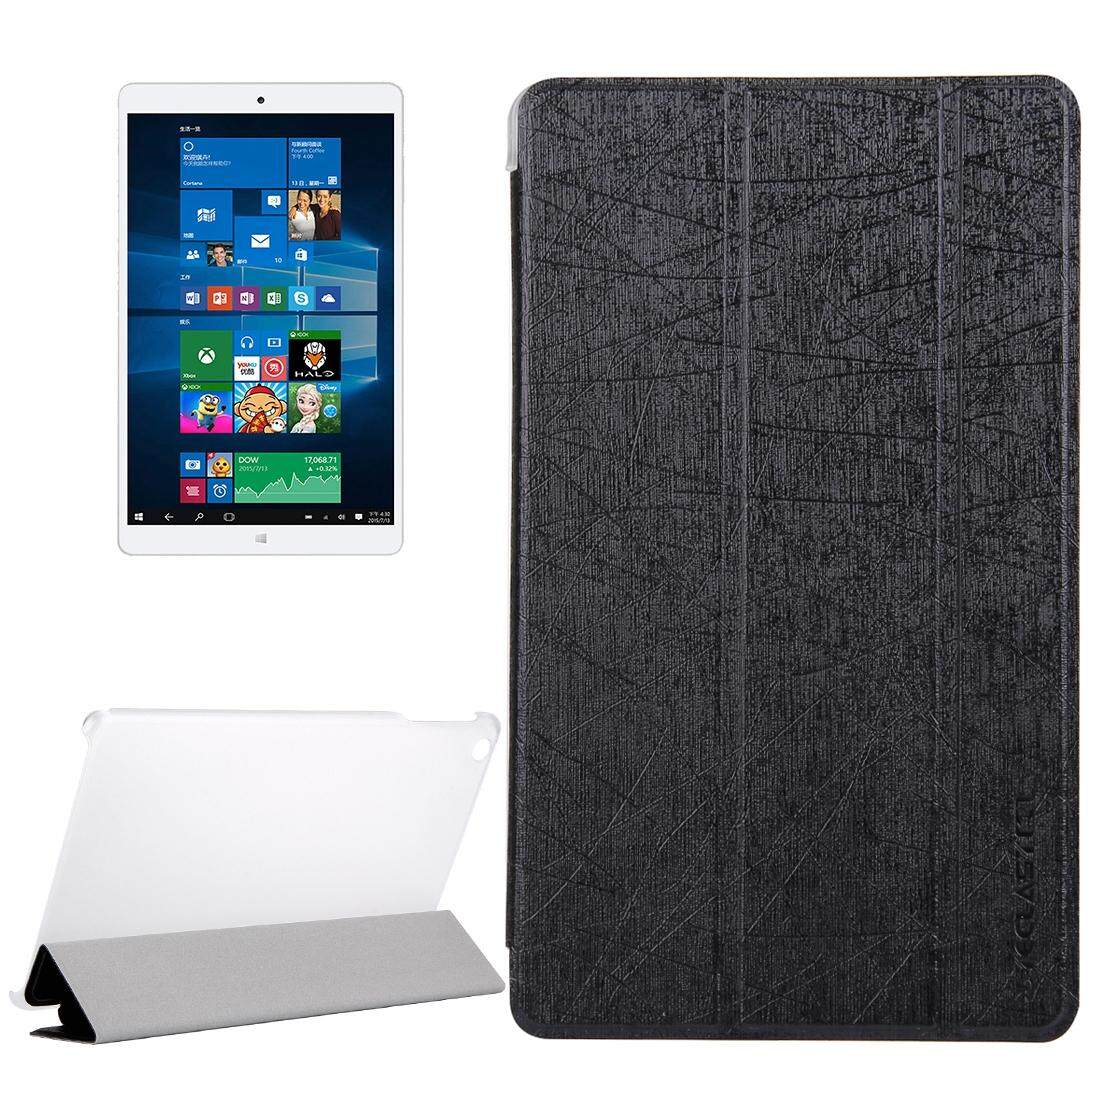 Teclast X80 Power Dual OS Tablet(WMC0011) Silk Texture Horizontal Flip Leather Case with with Translucent Frosted Plastic Back Shell & Three-folding Holder(Black) - intl